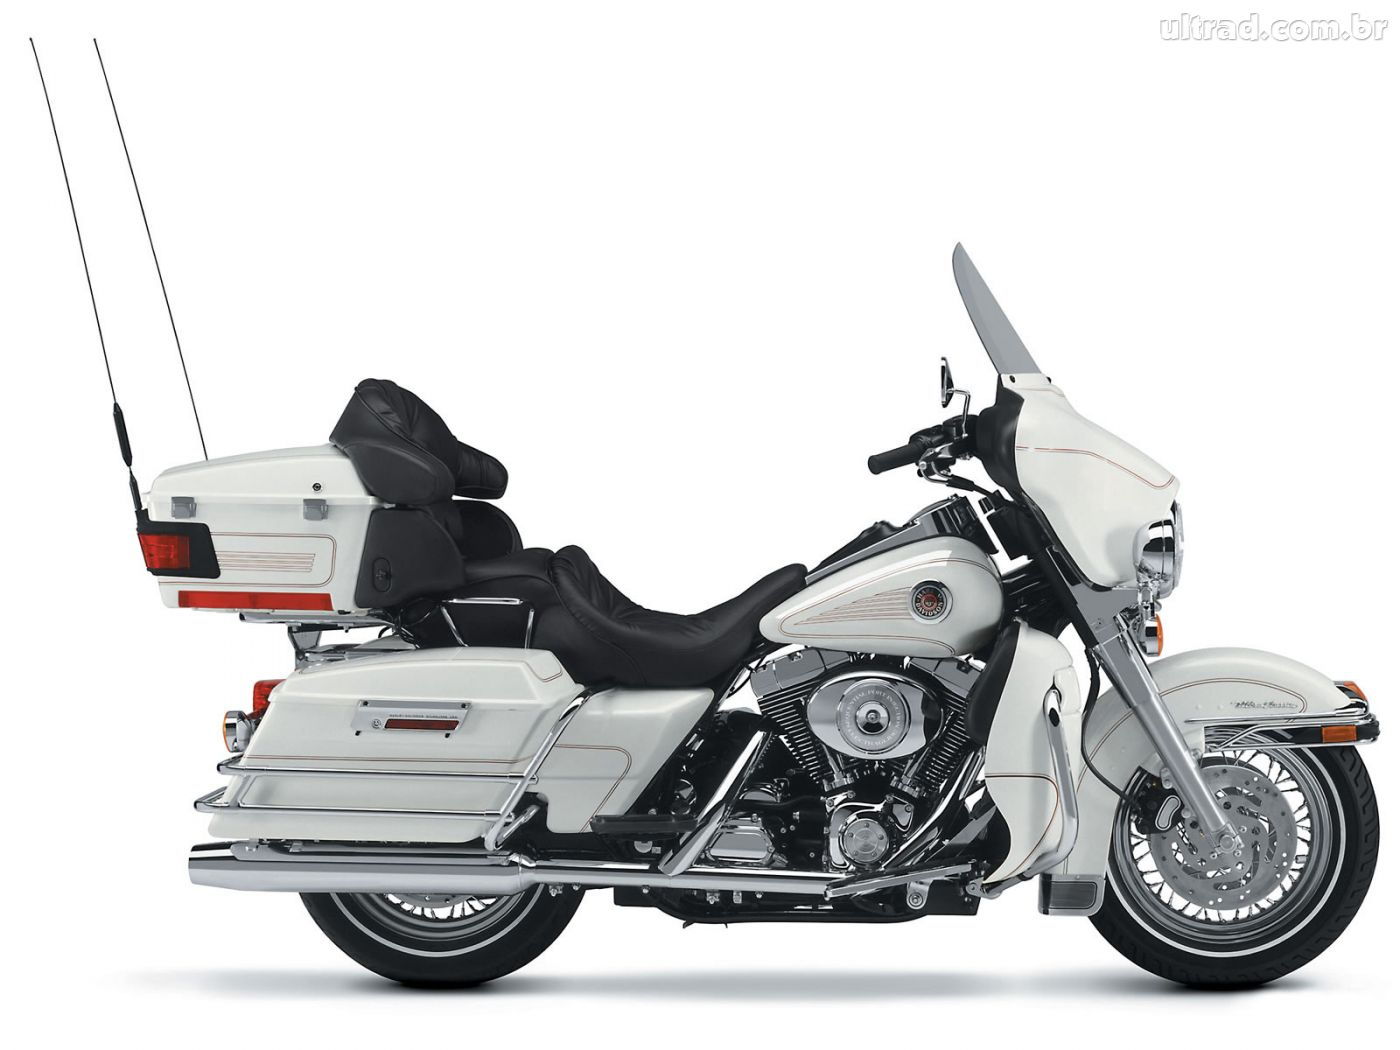 Harley-Davidson FLHTC Electra Glide Classic 2013 pics #19892